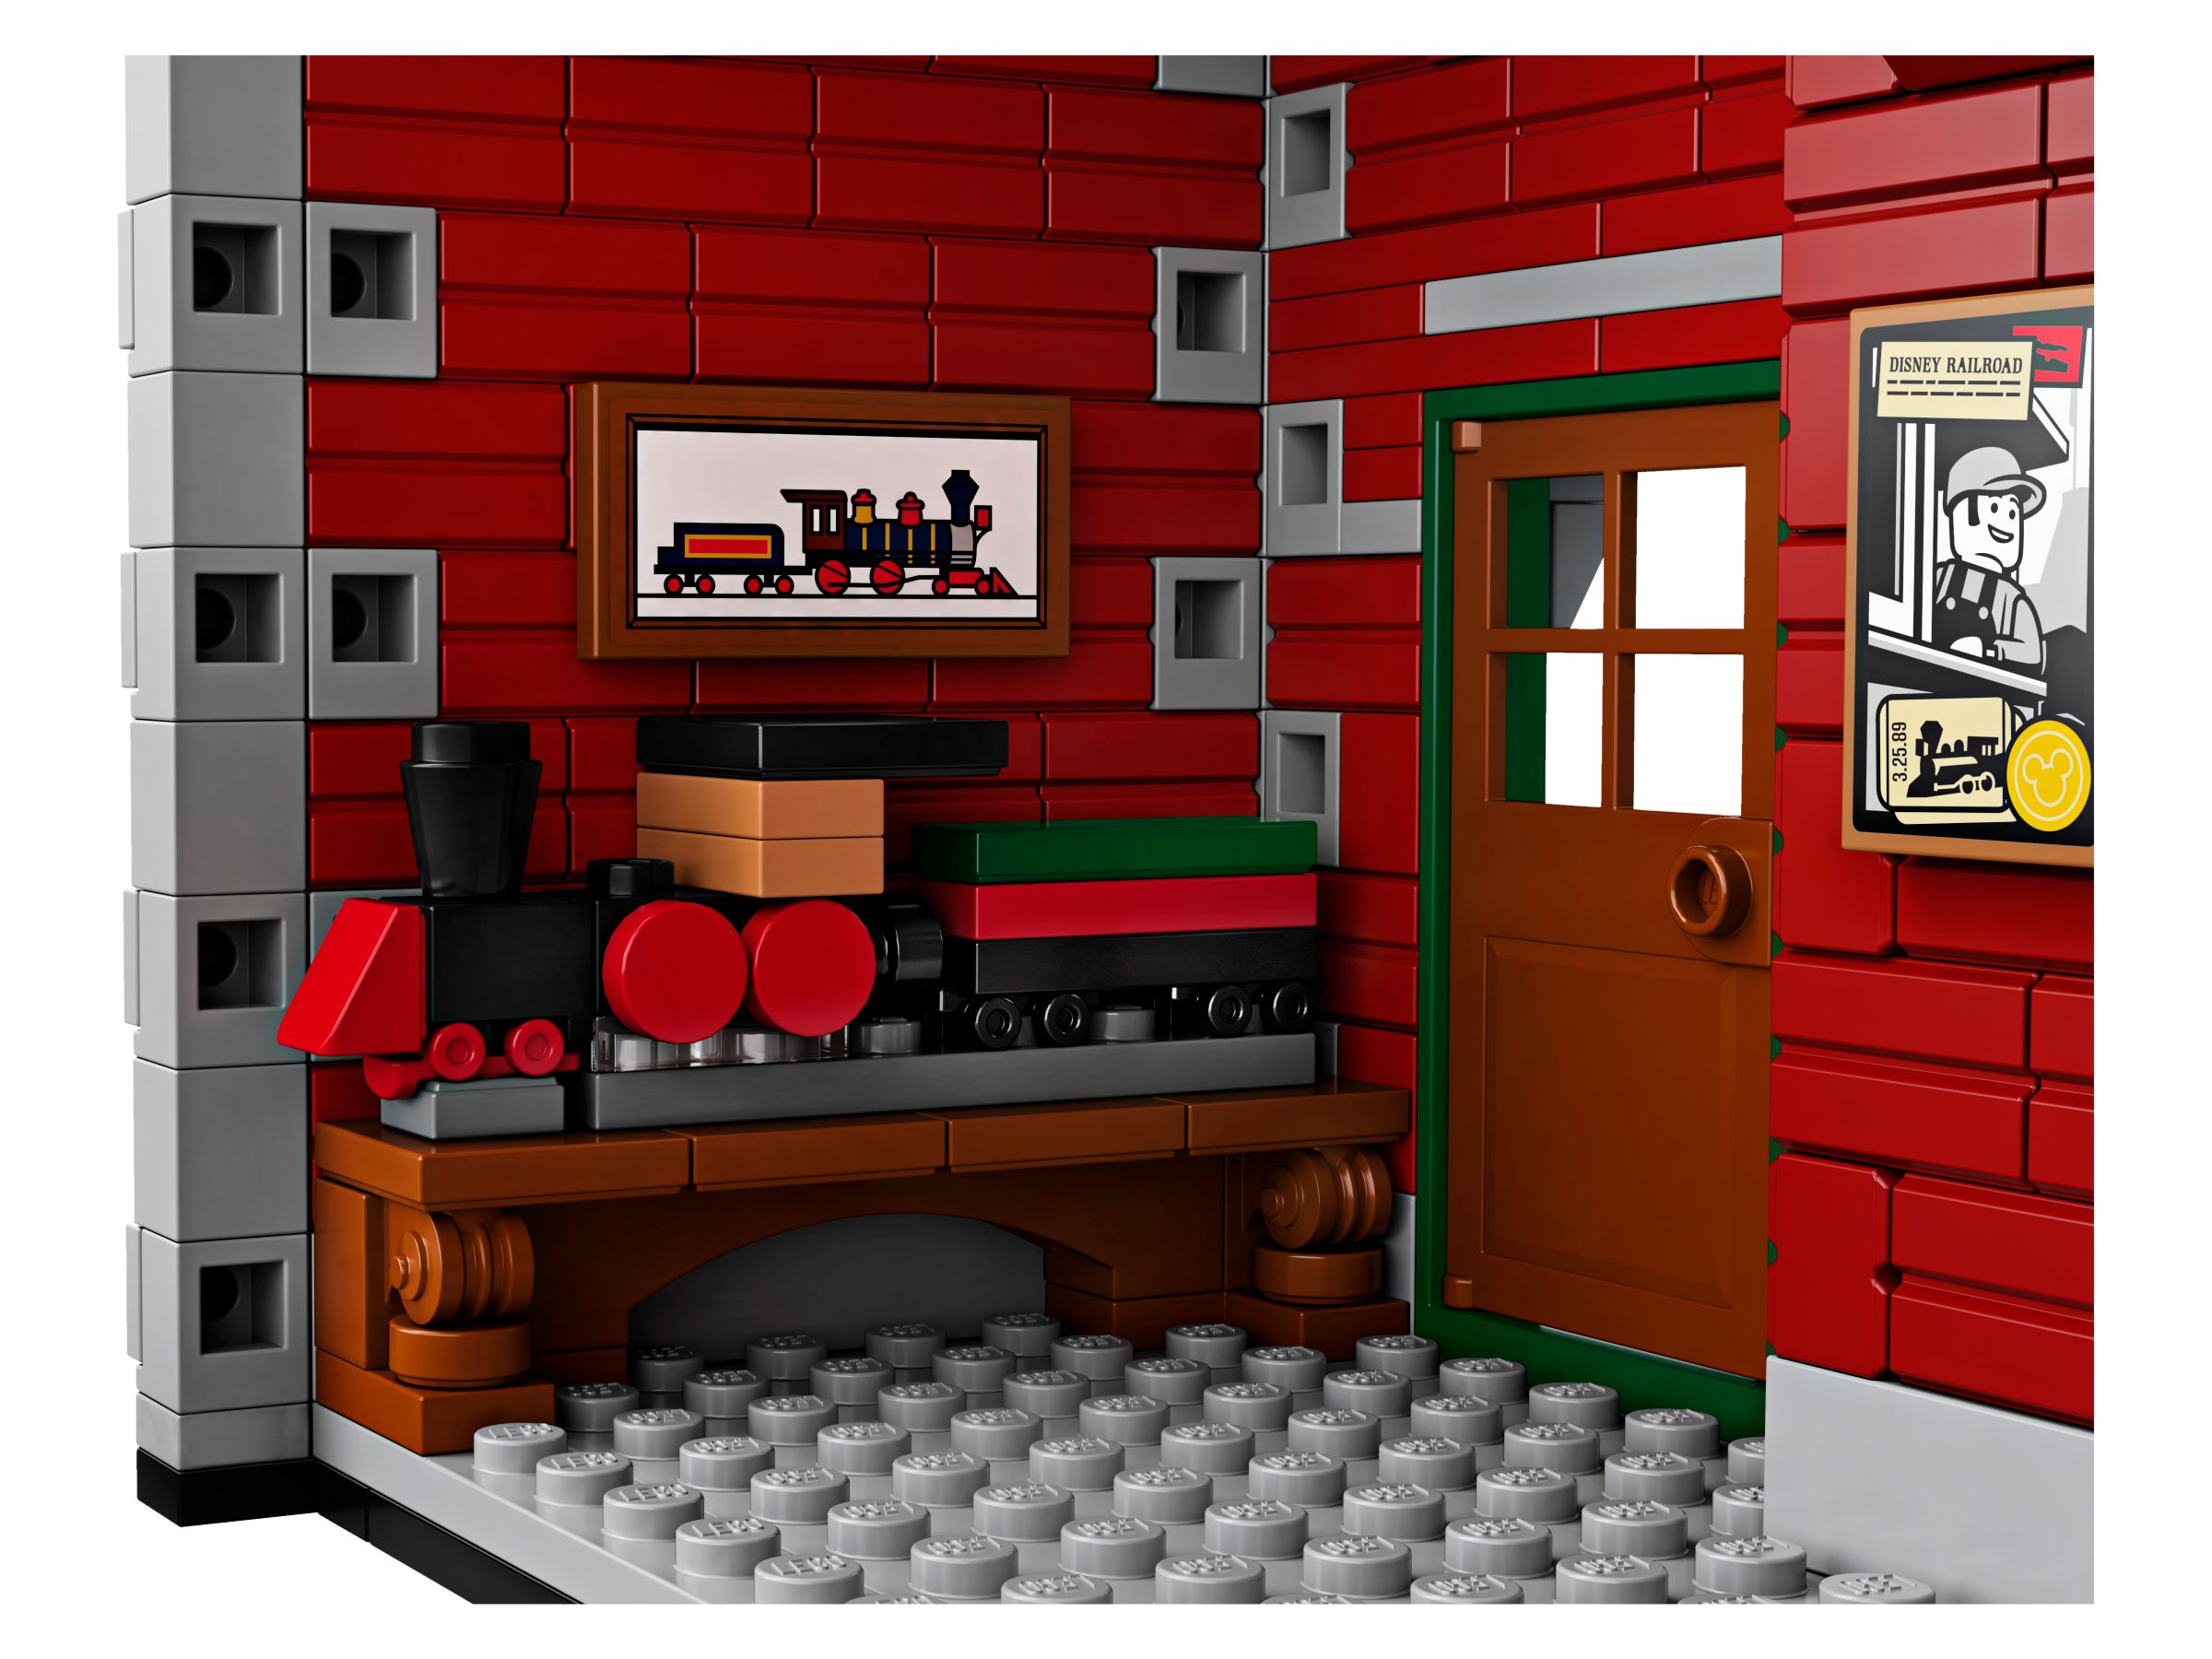 LEGO Advanced Models 71044 Disney Zug mit Bahnhof LEGO_71044_alt6.jpg